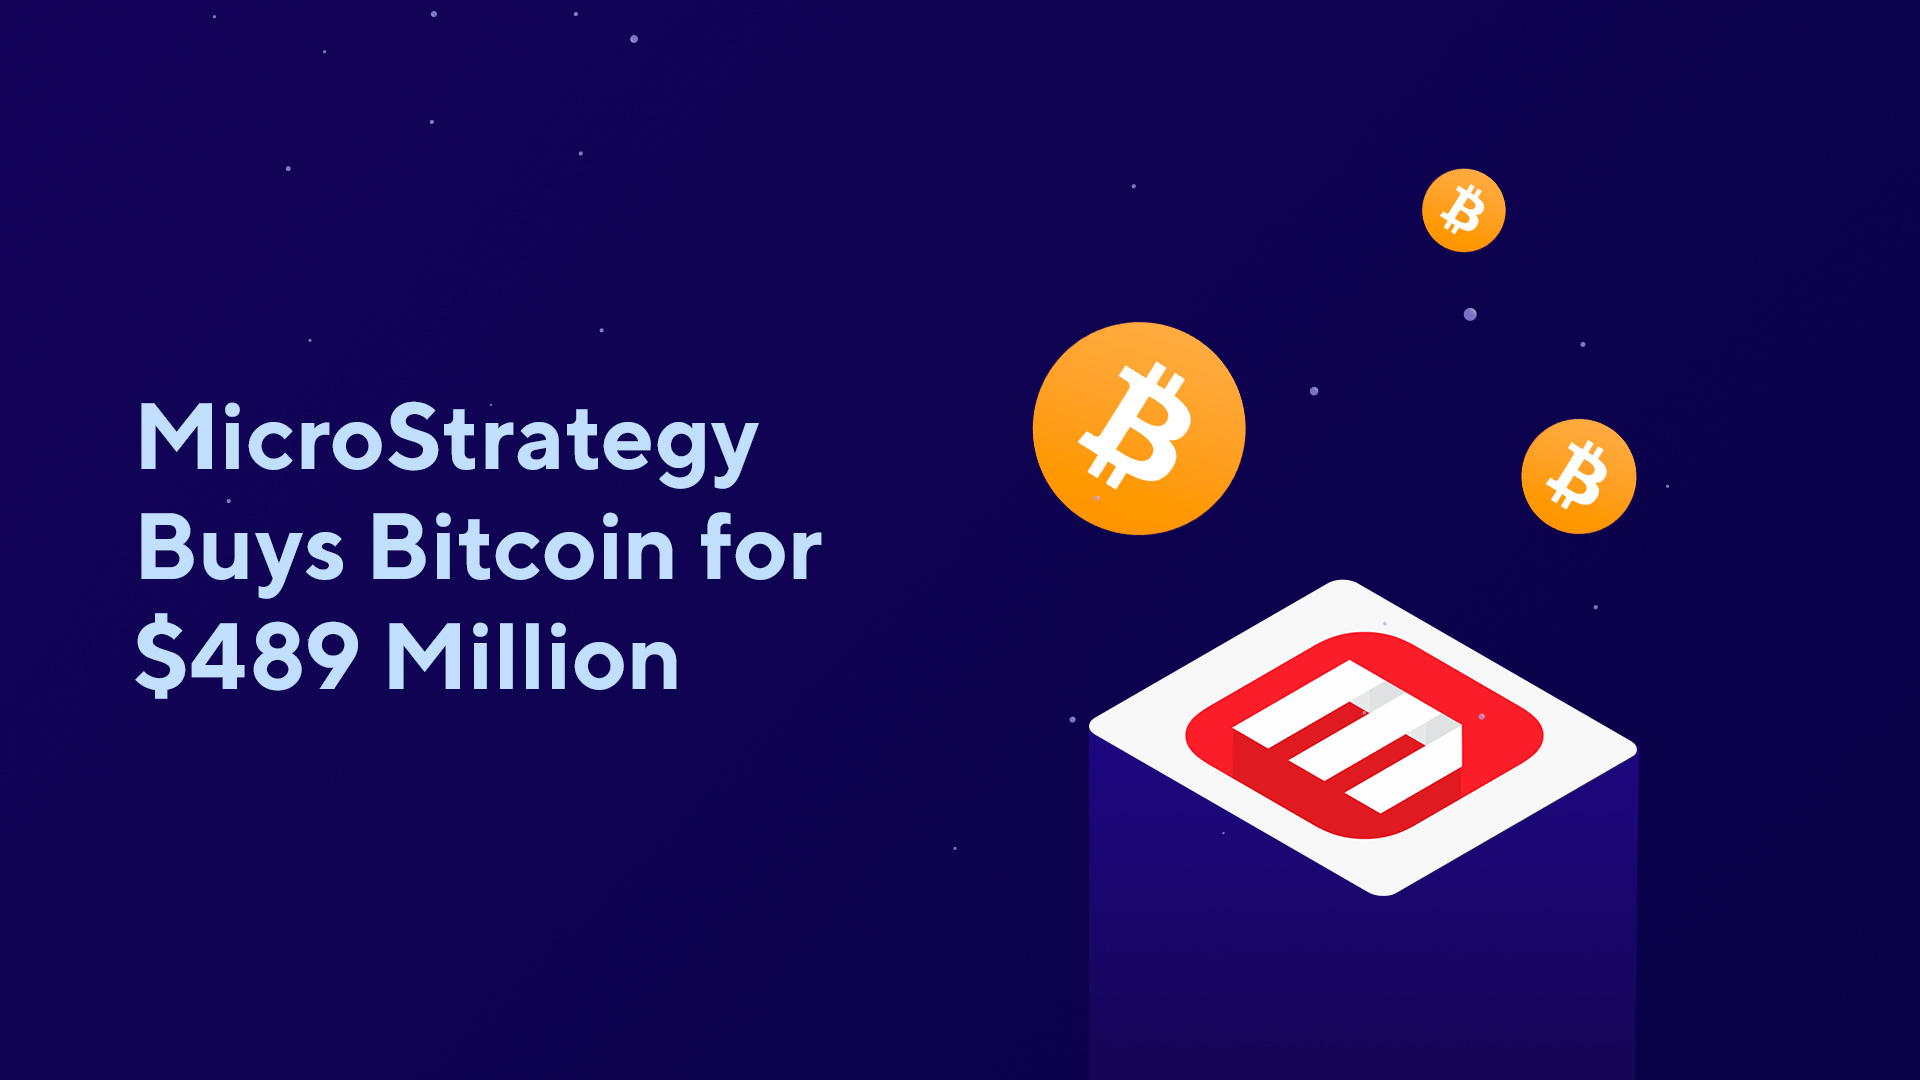 MicroStrategy Buys Bitcoin for $489 Million